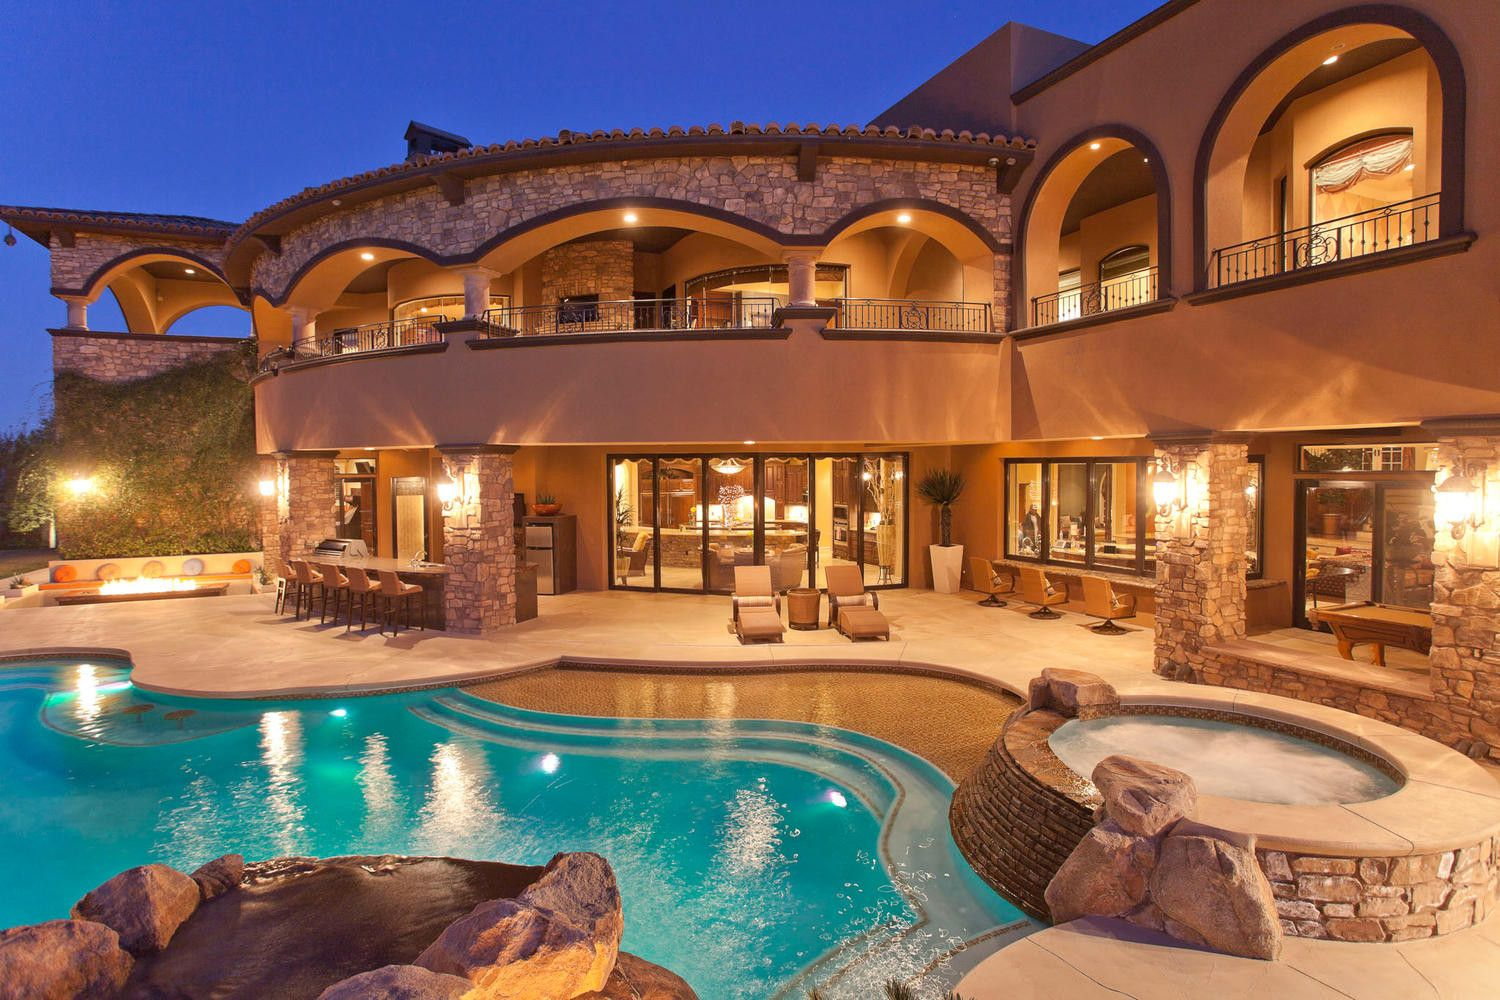 Luxury Homes With Pools http://pump-planet-luxury-houses.blogspot/ #pump #planet